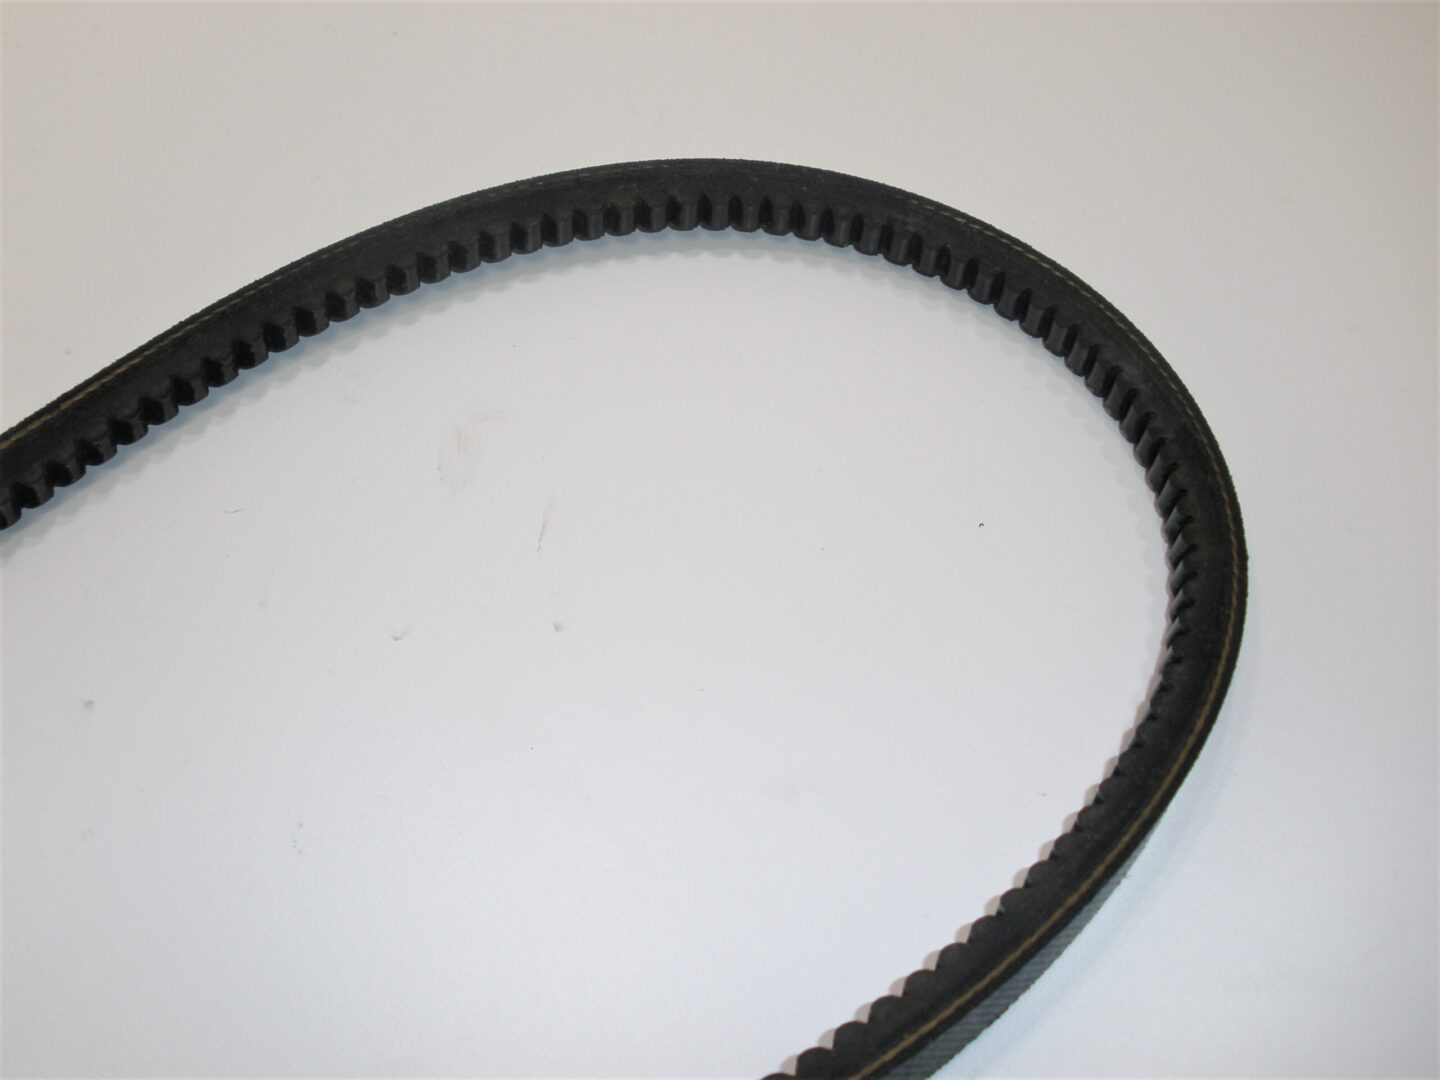 Mileage Maker 15520mk 11av1320 Engine Motor Accessory Drive Belt New Free Ship Max Marine Outlet